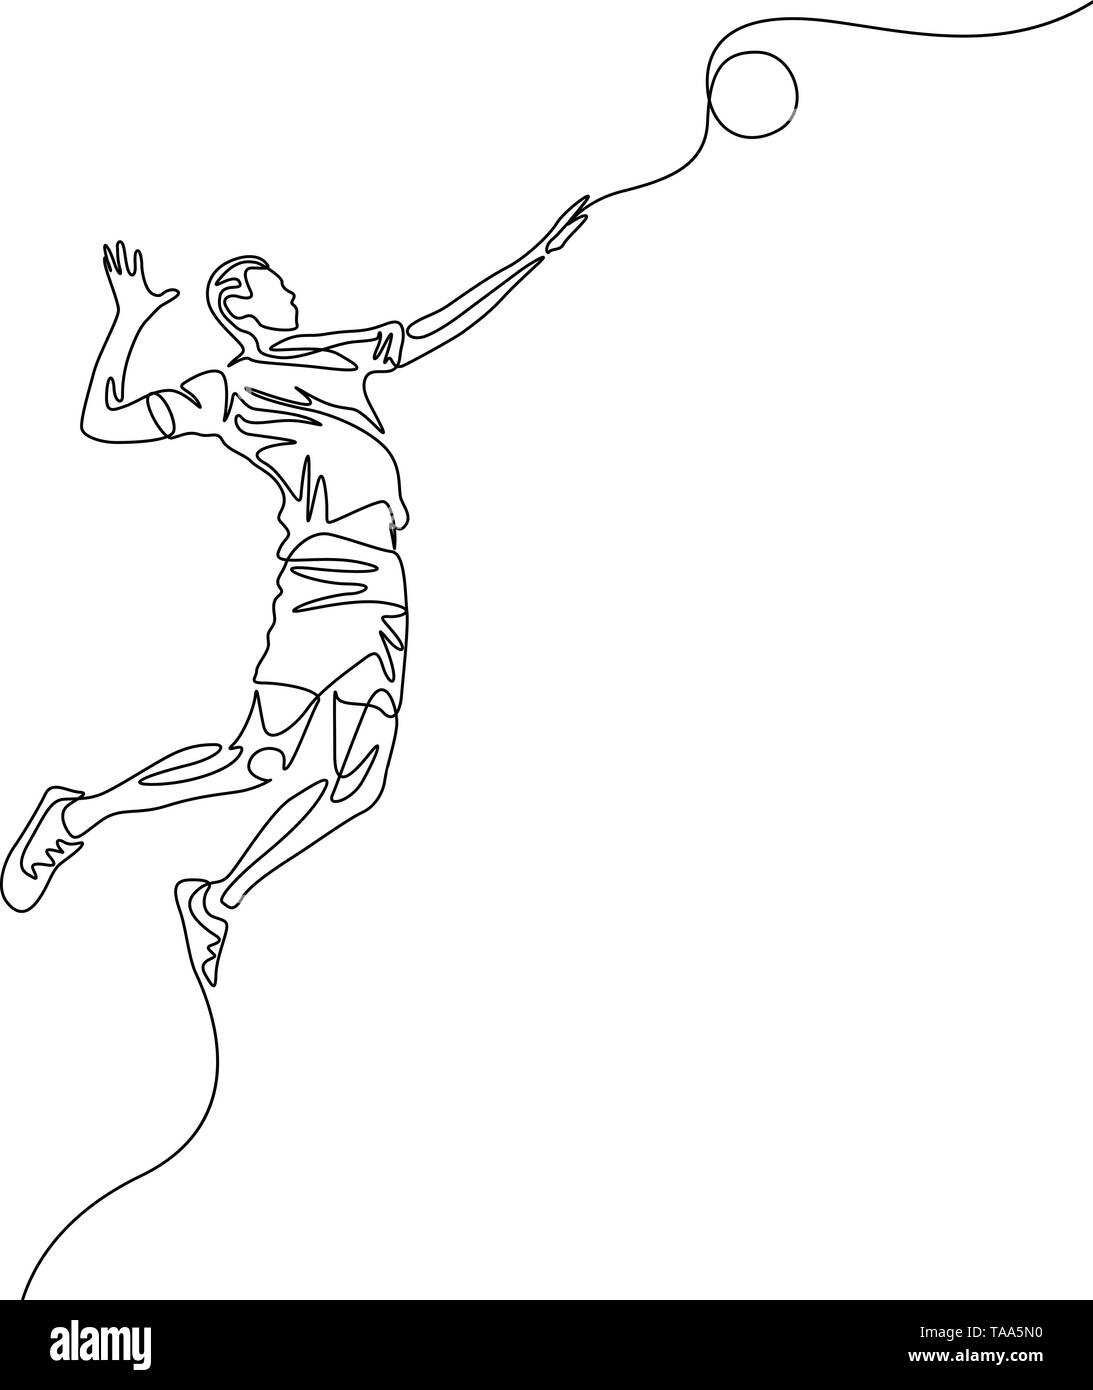 Continuous one line volleyball player jumps to throw the ball - Stock Image